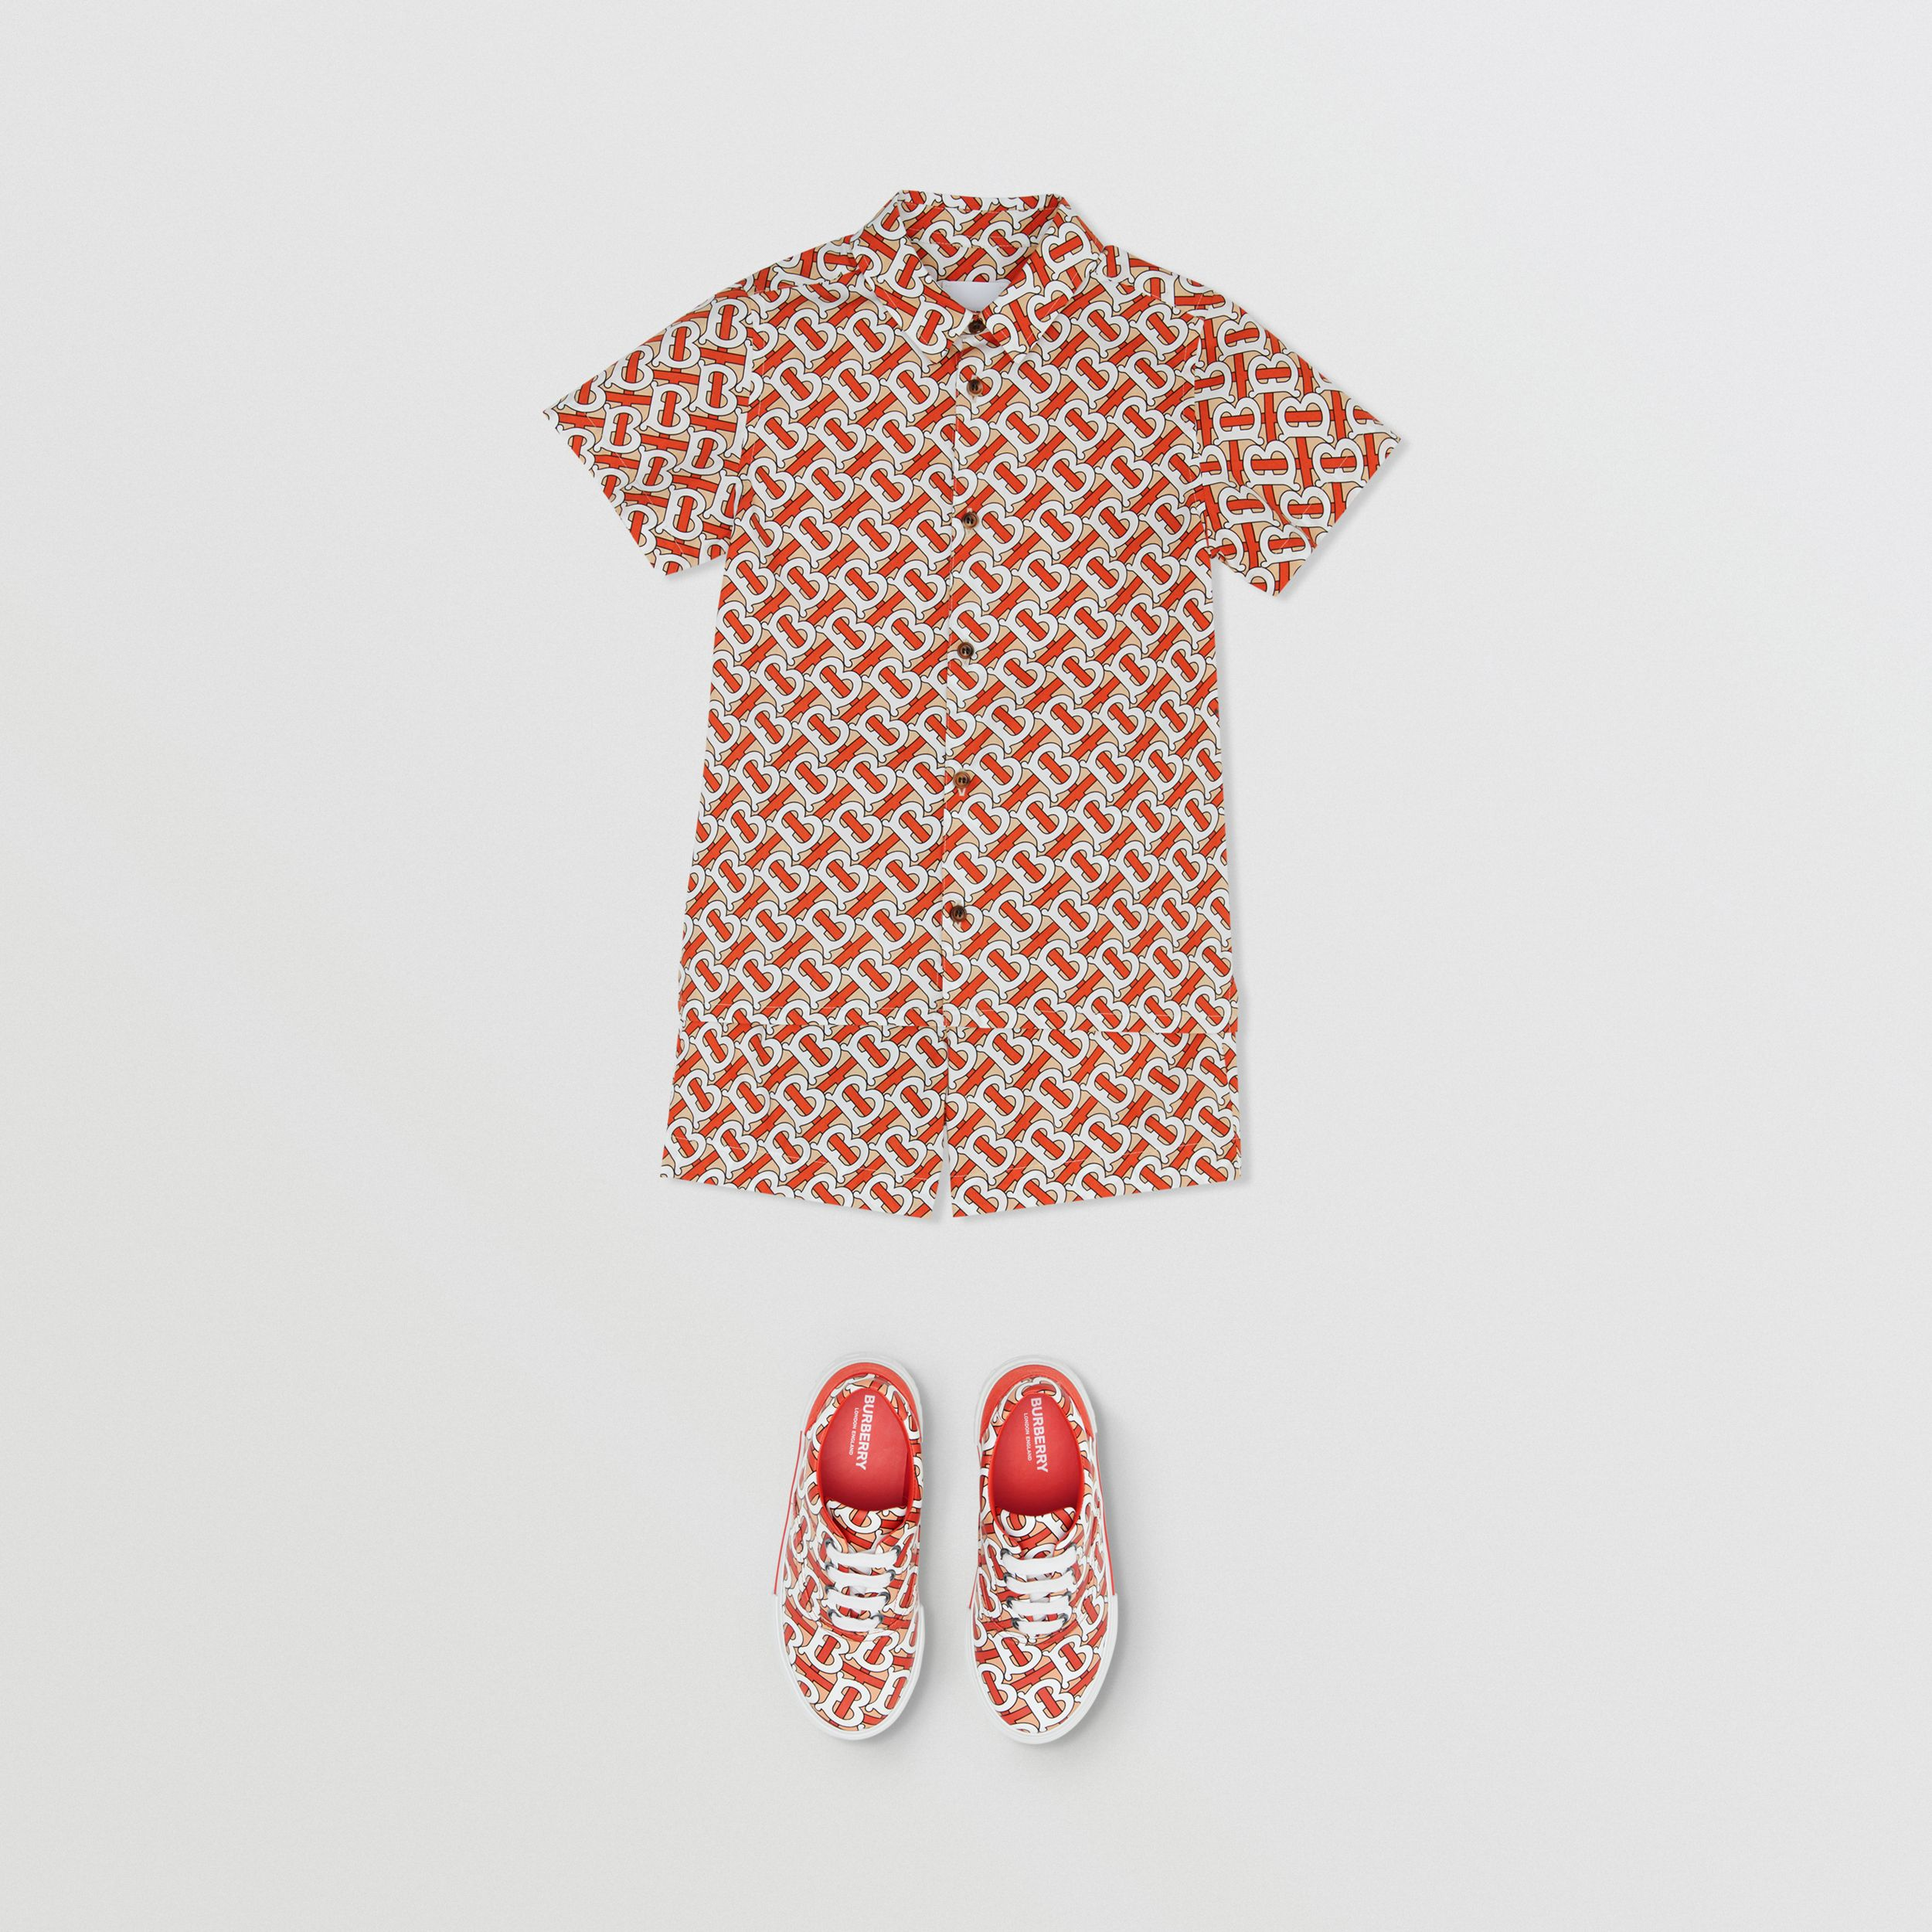 Short-sleeve Monogram Print Cotton Poplin Shirt in Vermilion Red | Burberry - 3